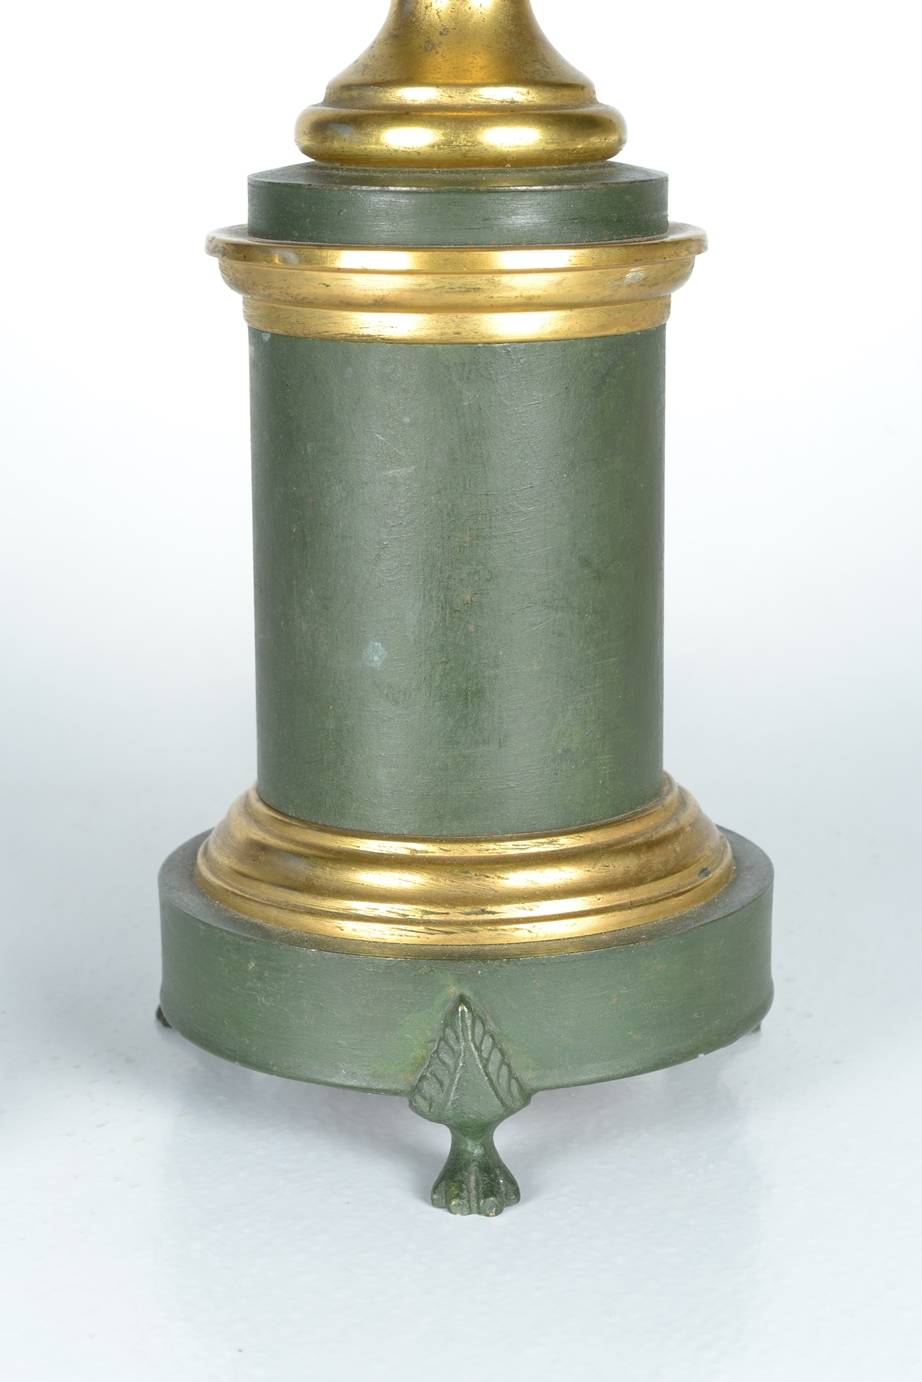 View 4: Green Tole Lamp, 19th c.